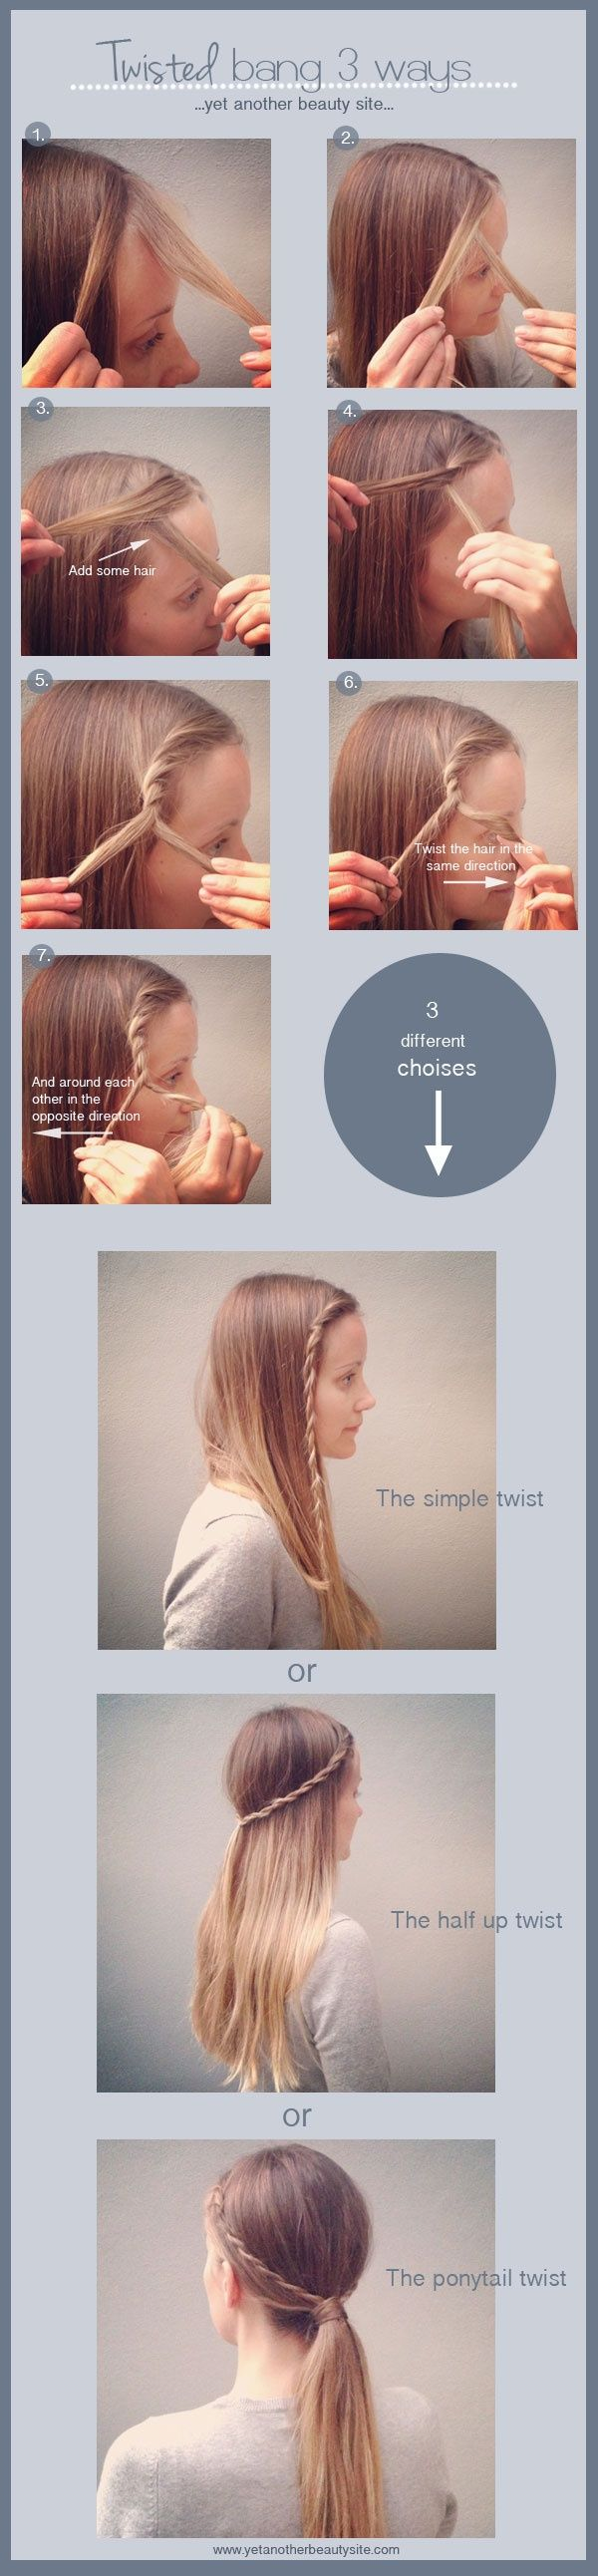 best kaylaus hair styles for everyday images on pinterest